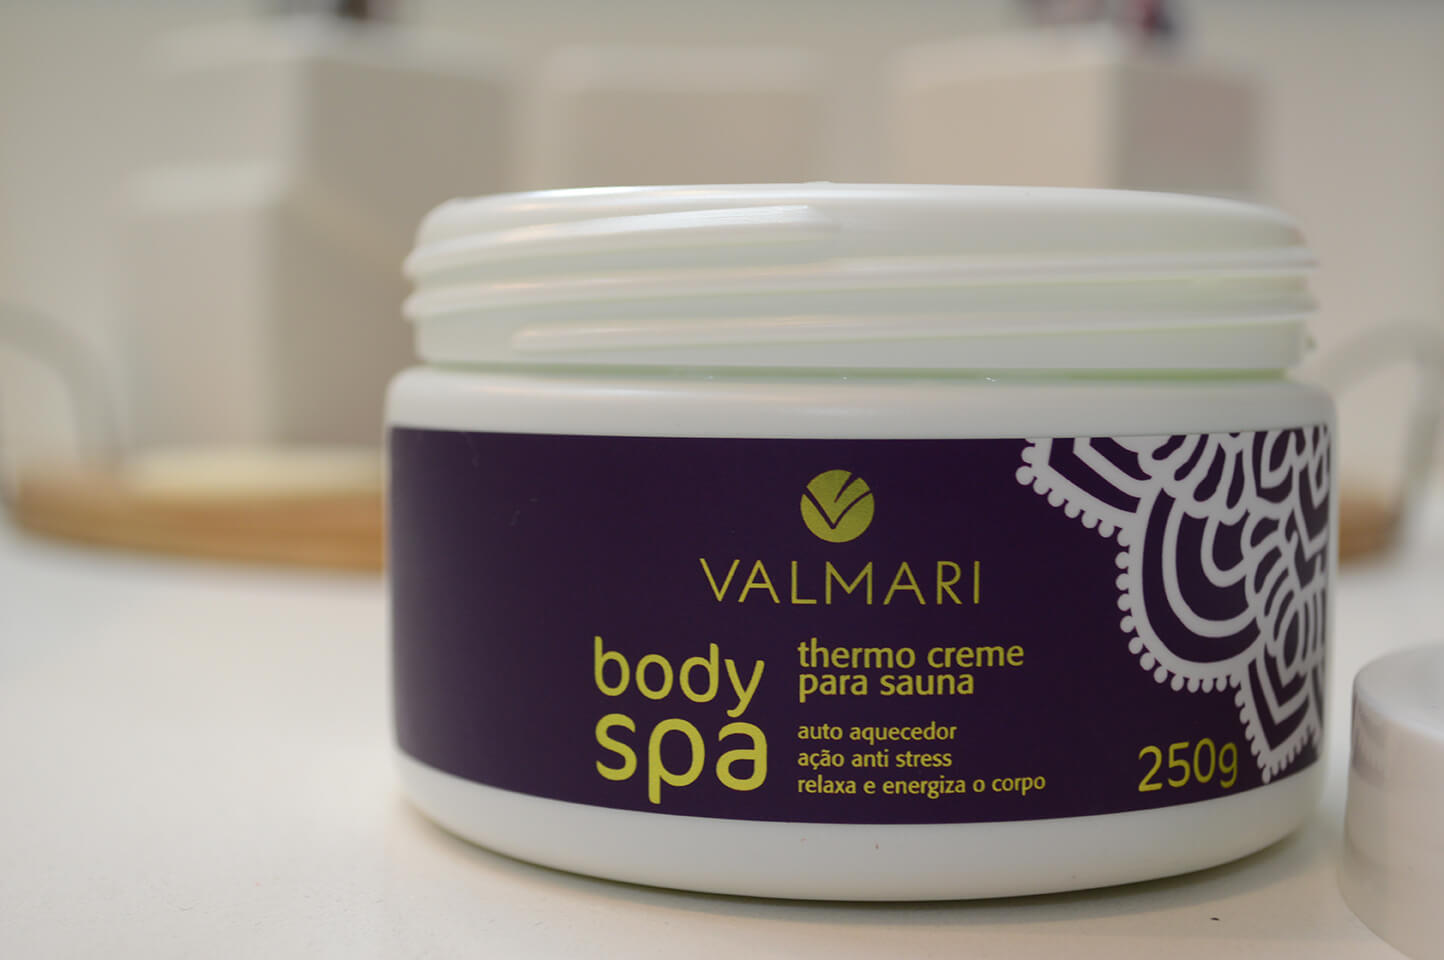 Valmari Body Spa Thermo Creme para Sauna